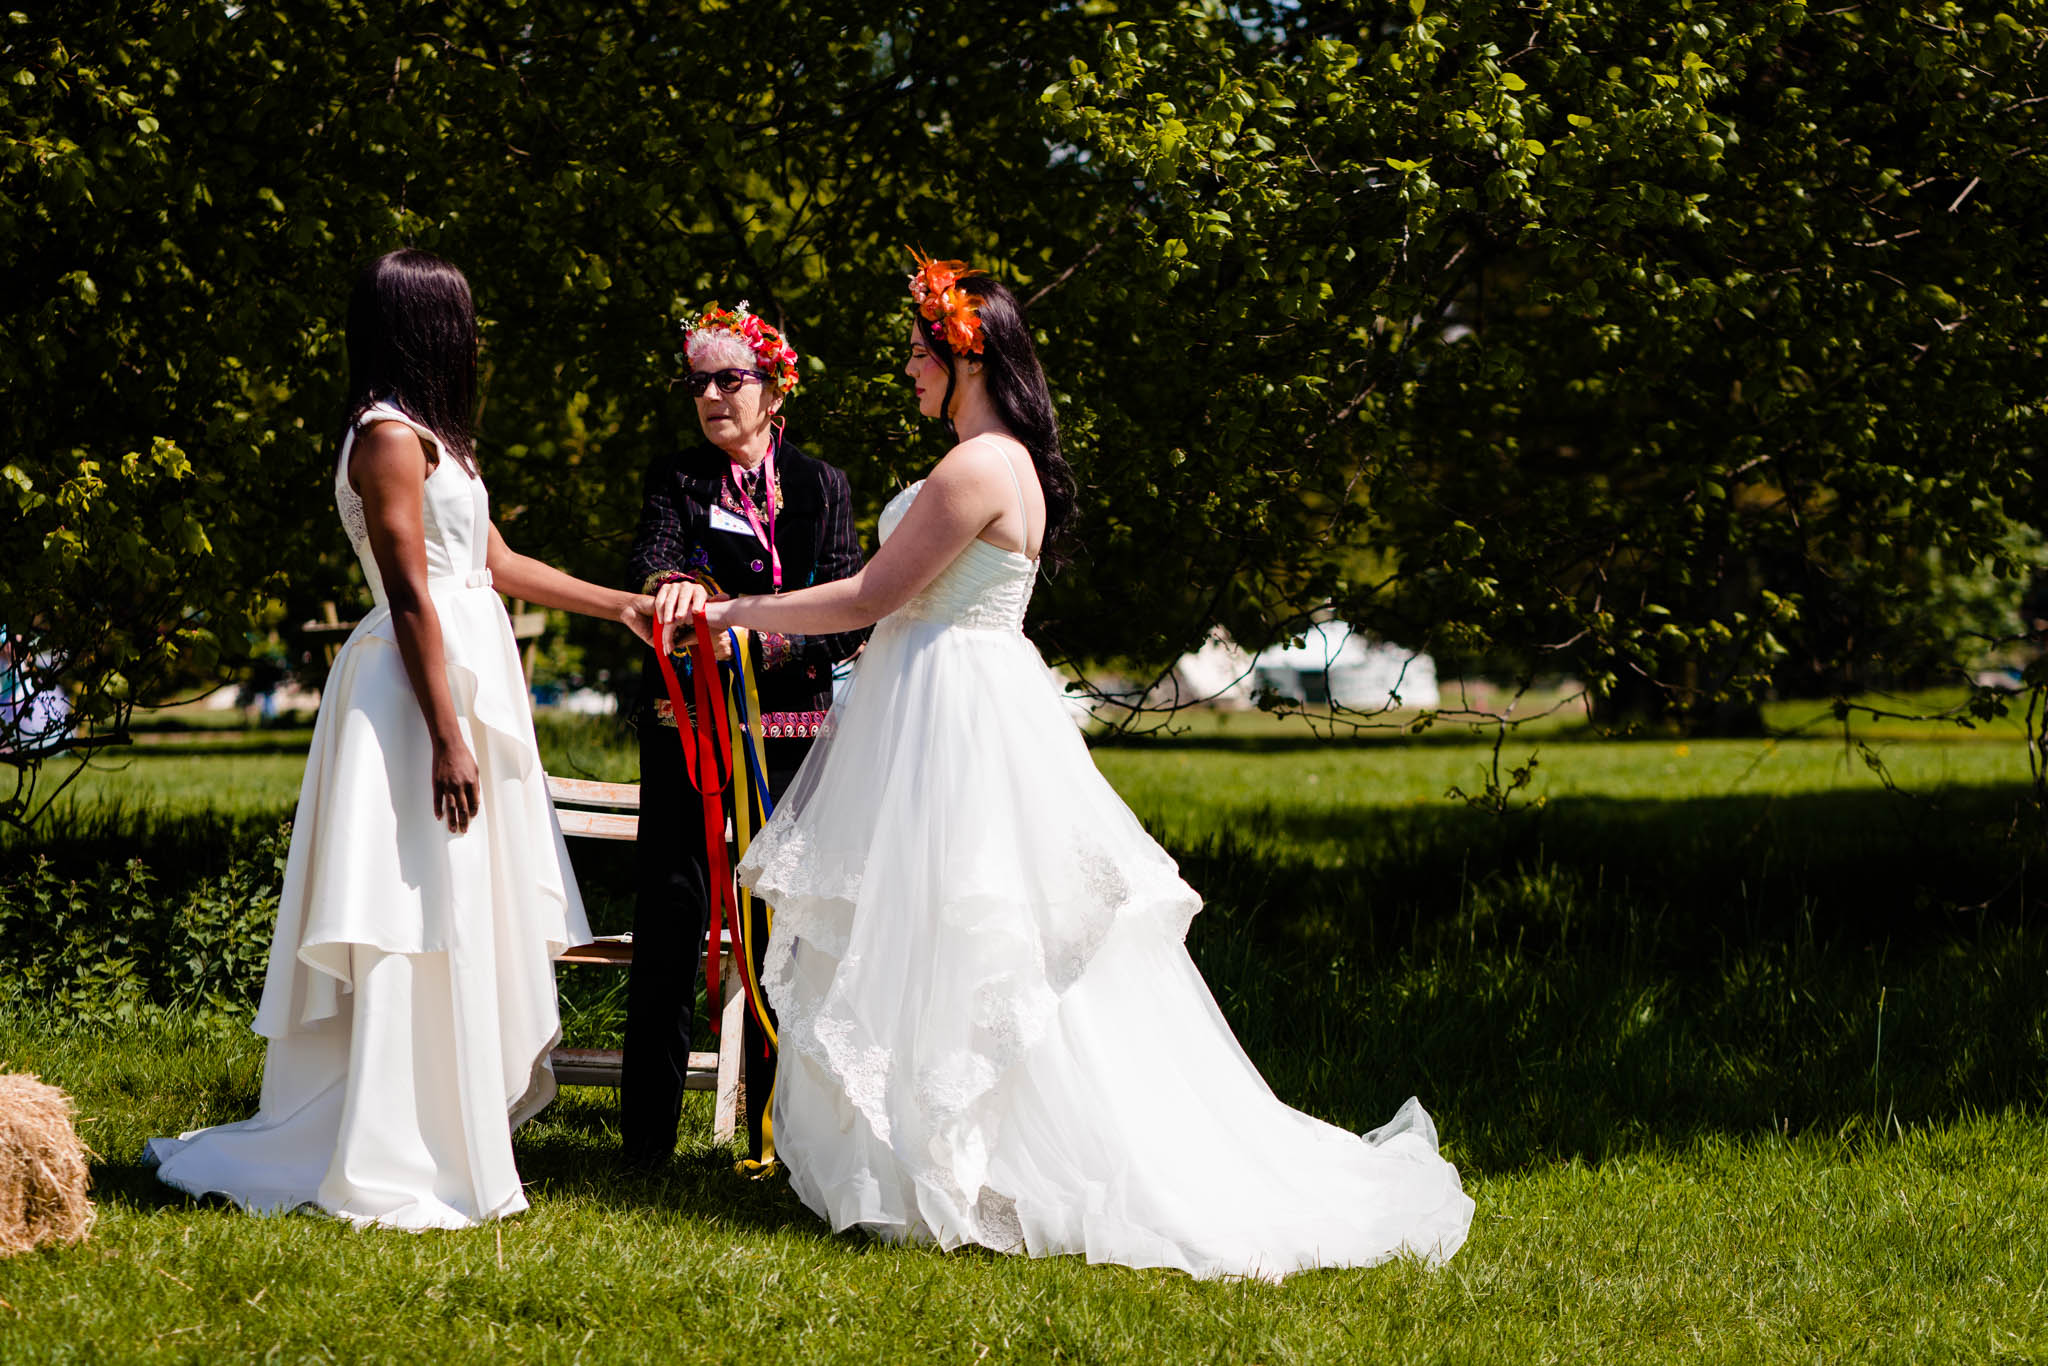 Vicki Clayson Photography - Star Ceremonies - Hand fasting ceremony (1)